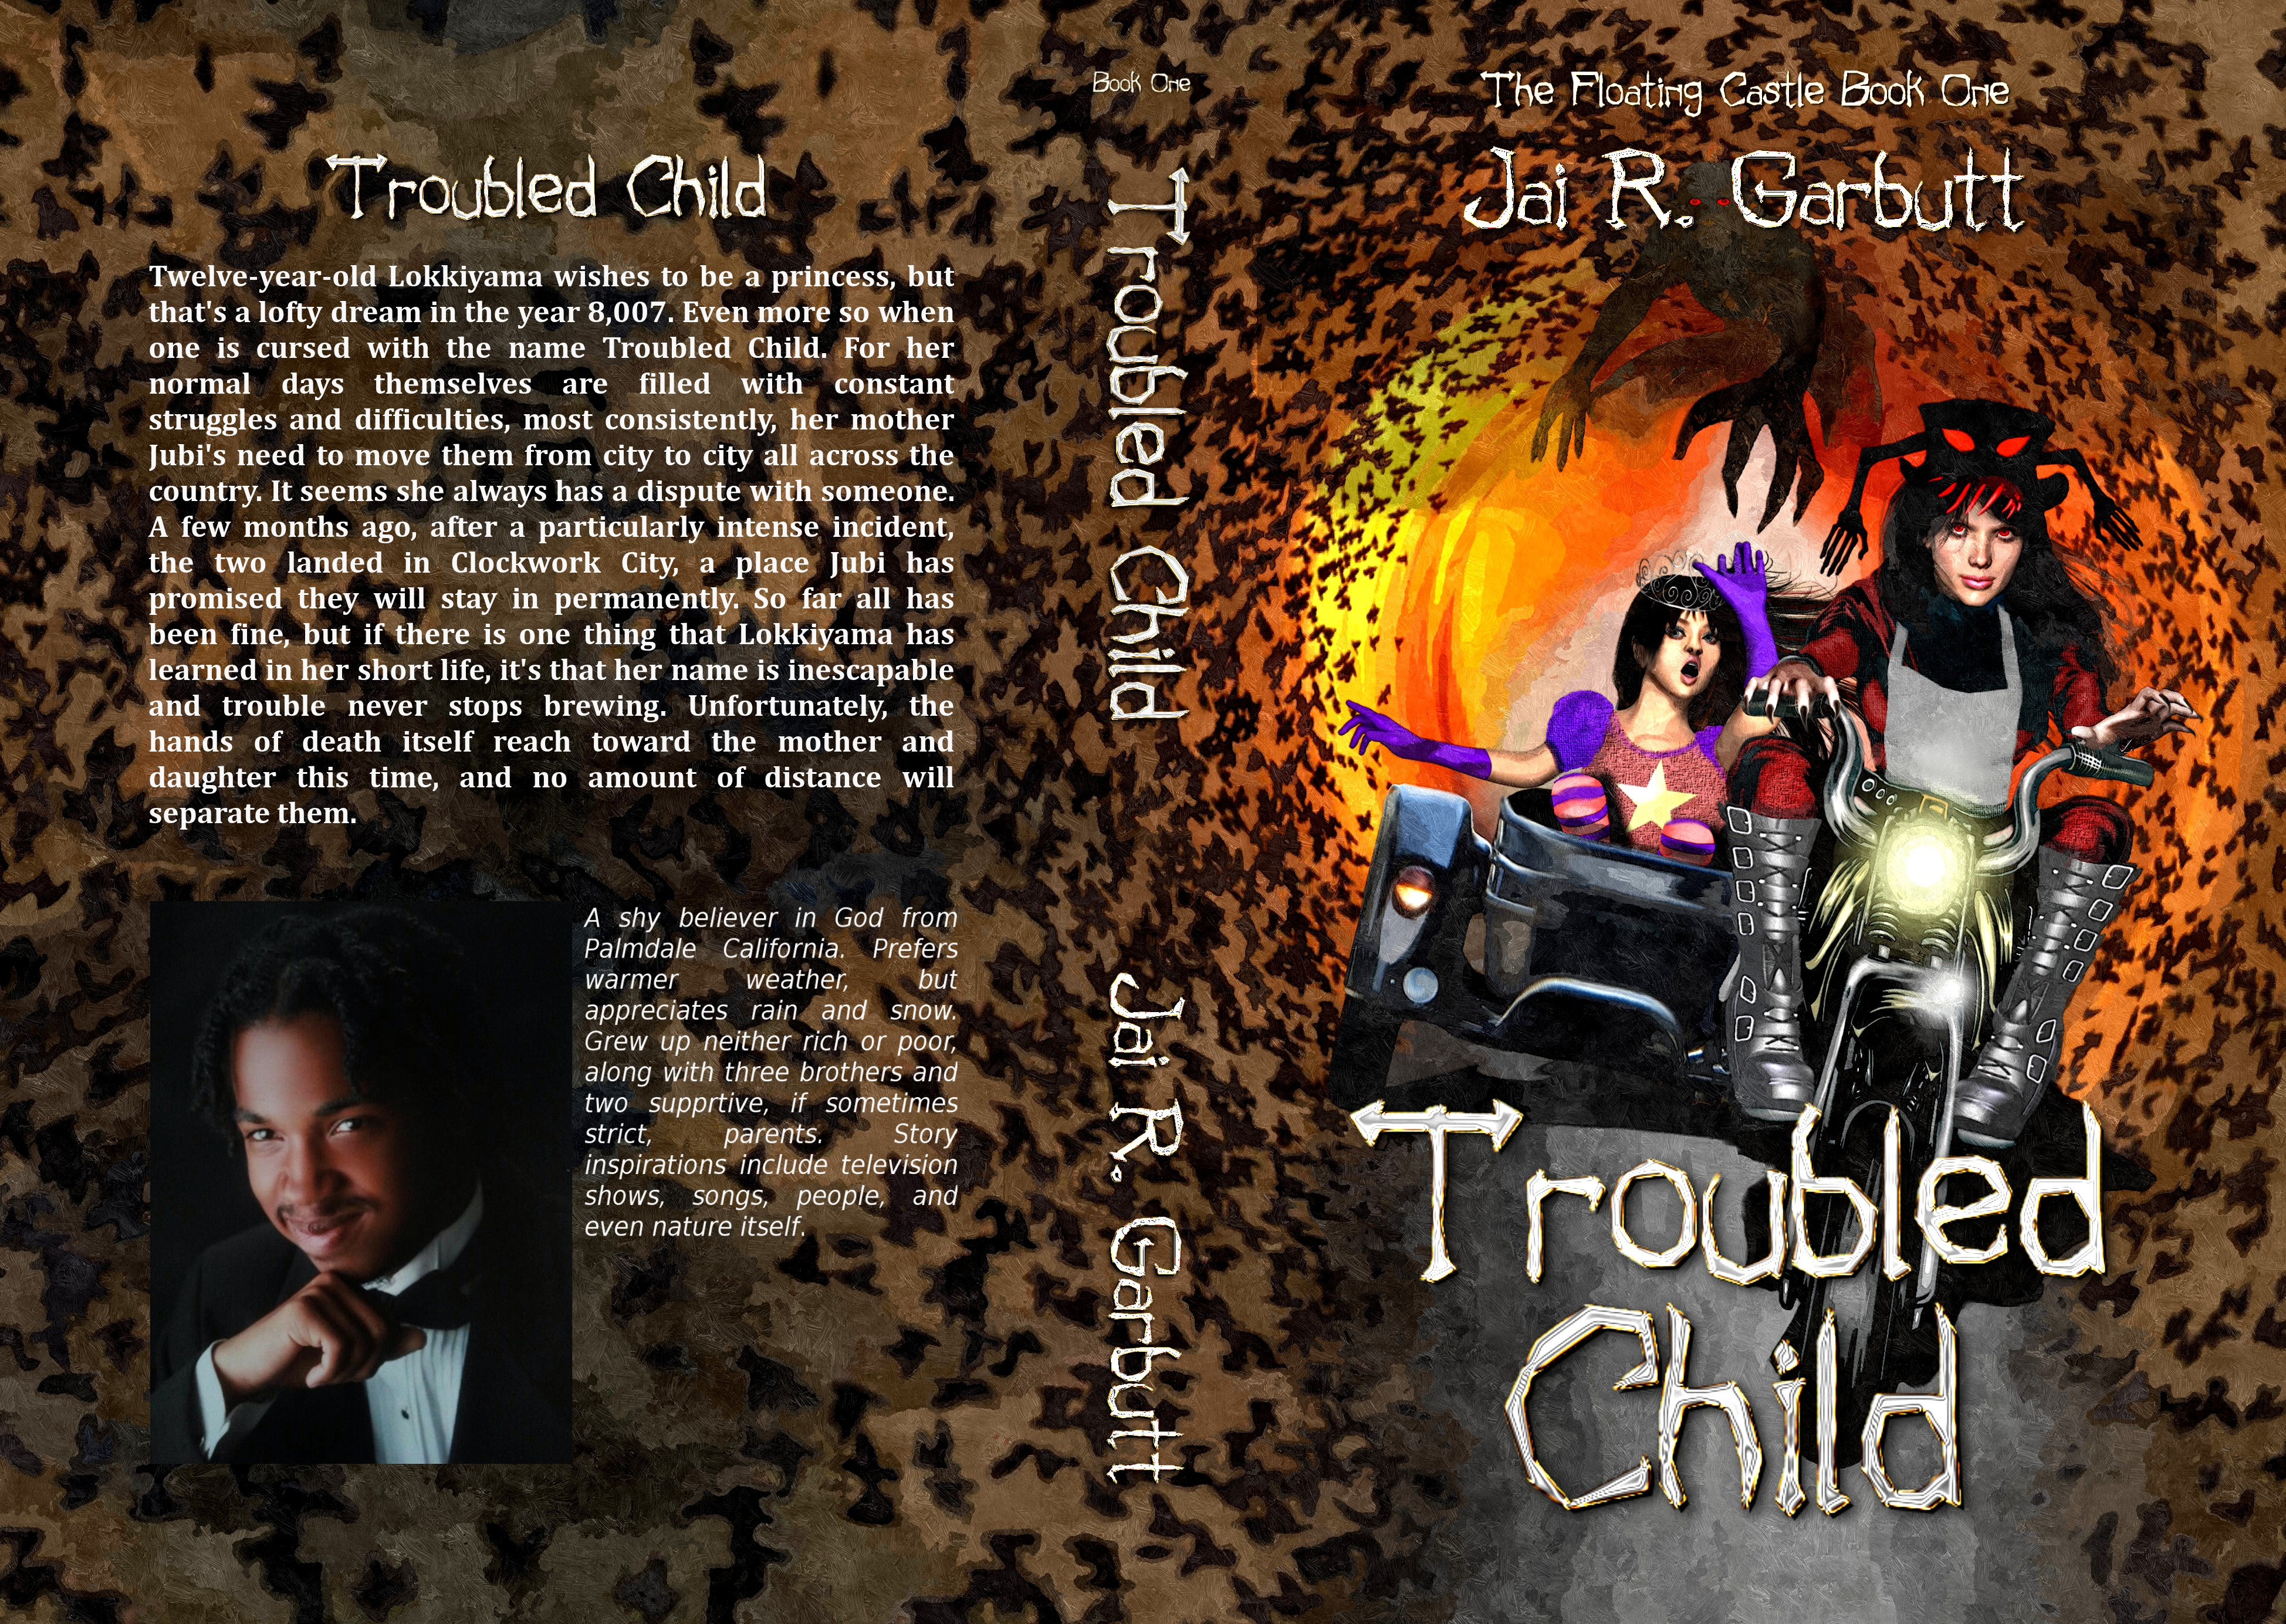 A Touch of Darkness for a Troubled Child